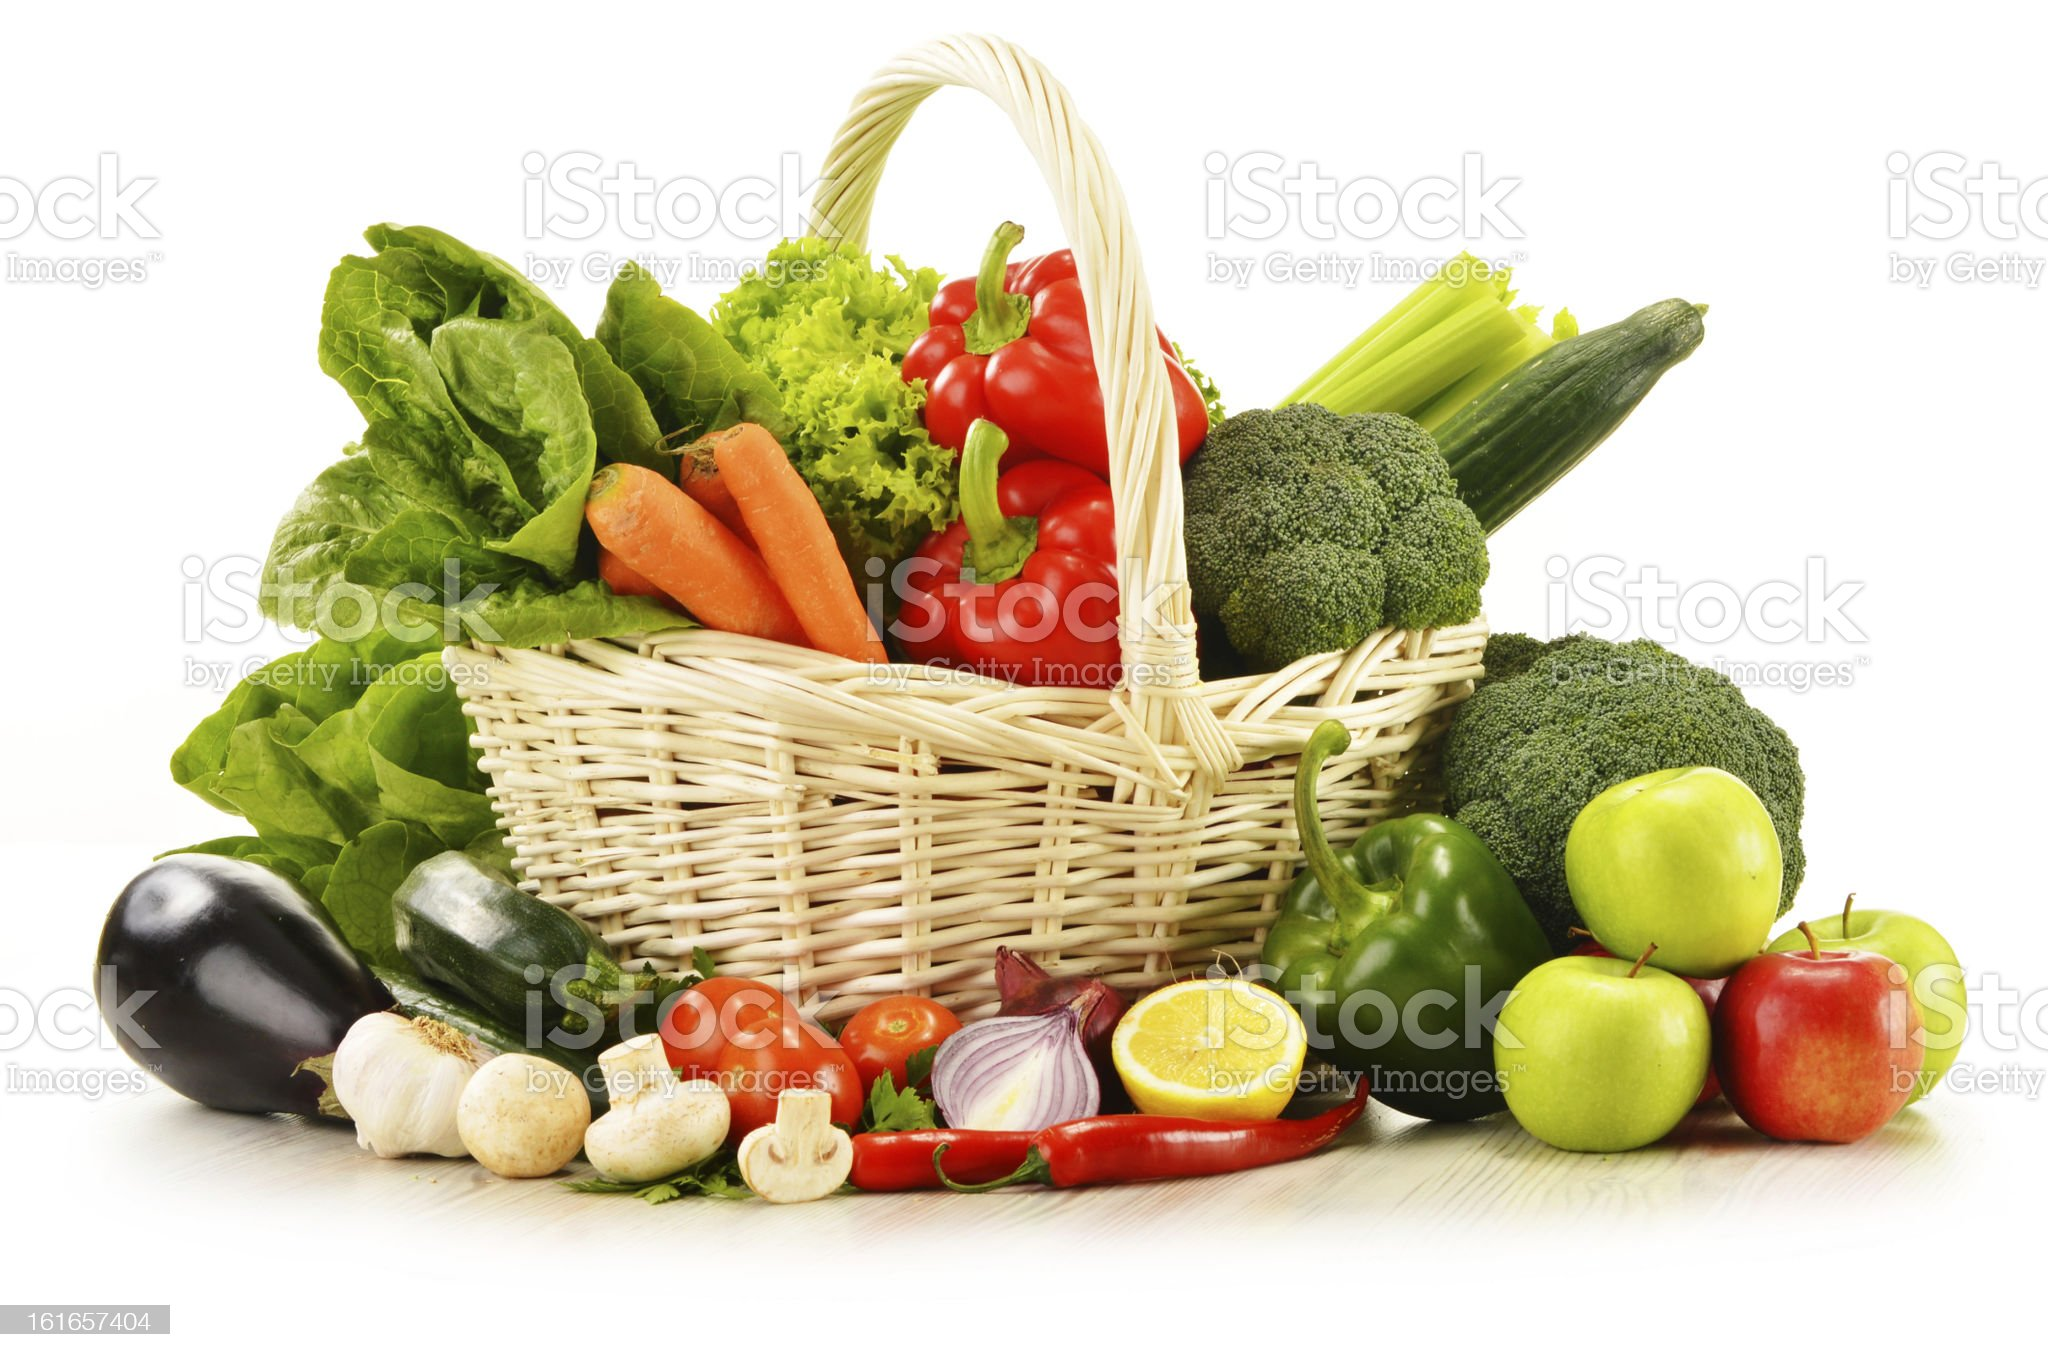 Composition with variety of raw vegetables isolated on white royalty-free stock photo